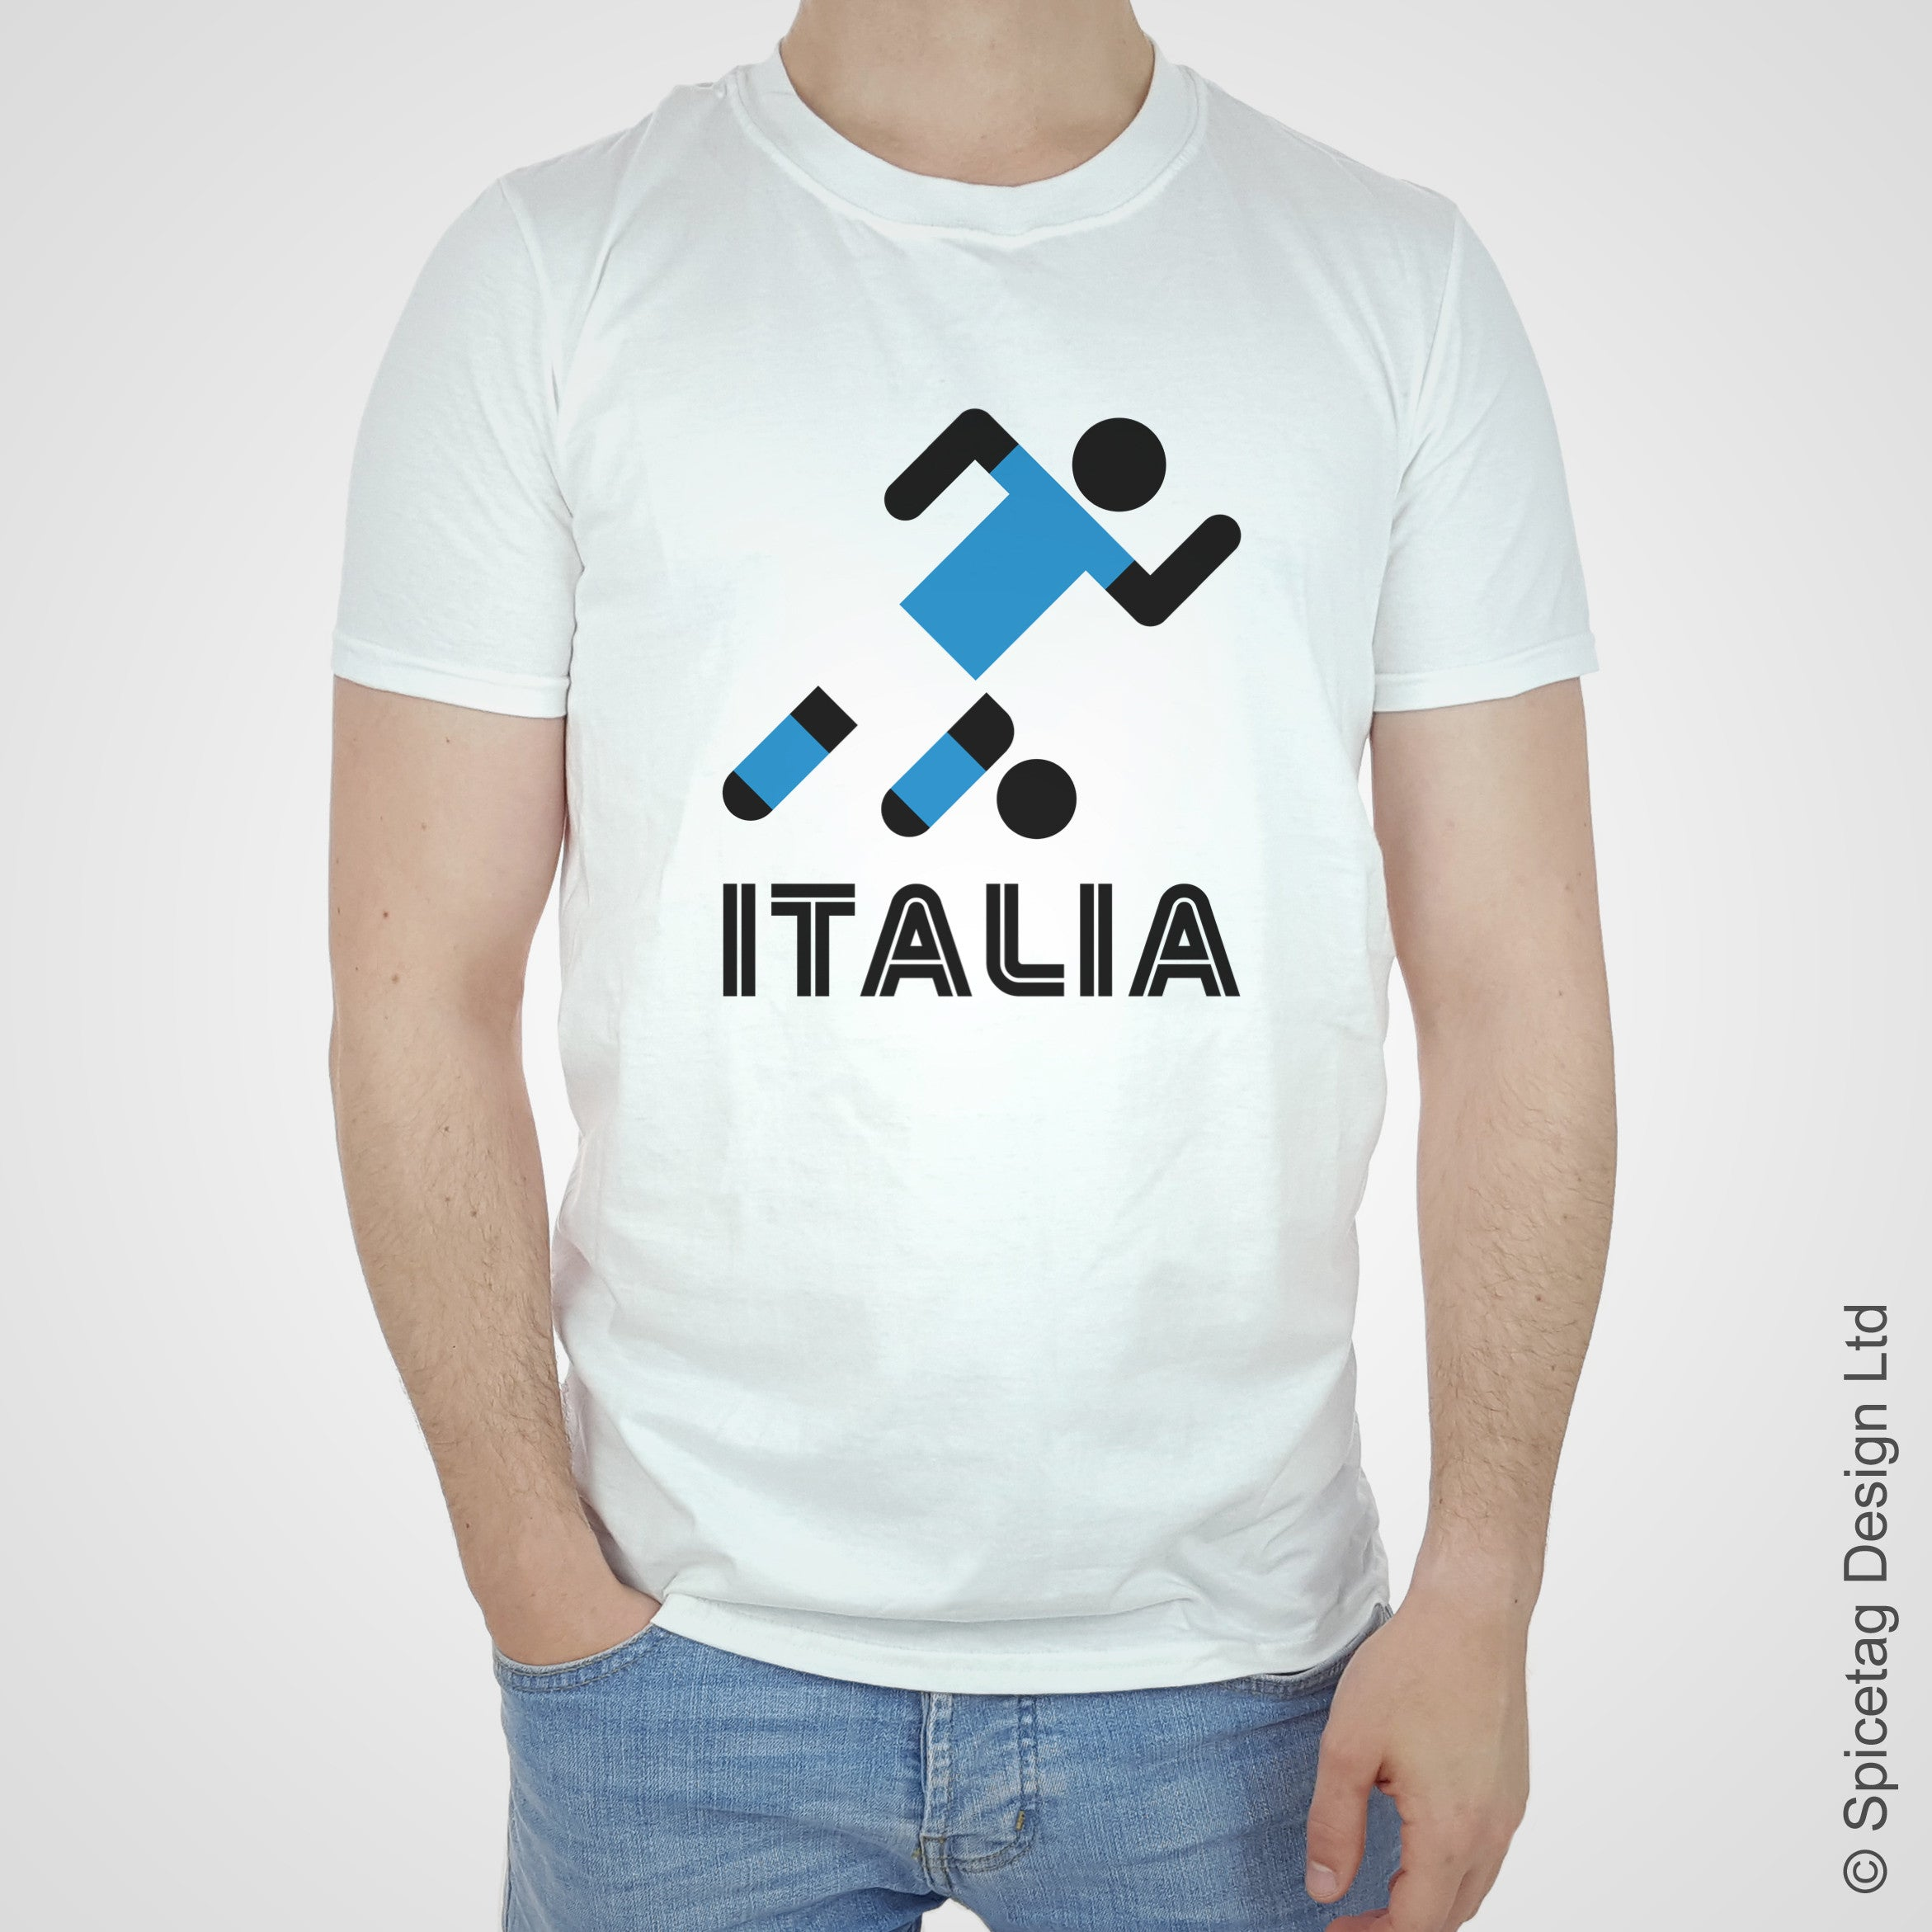 Italy Retro Football T-shirt